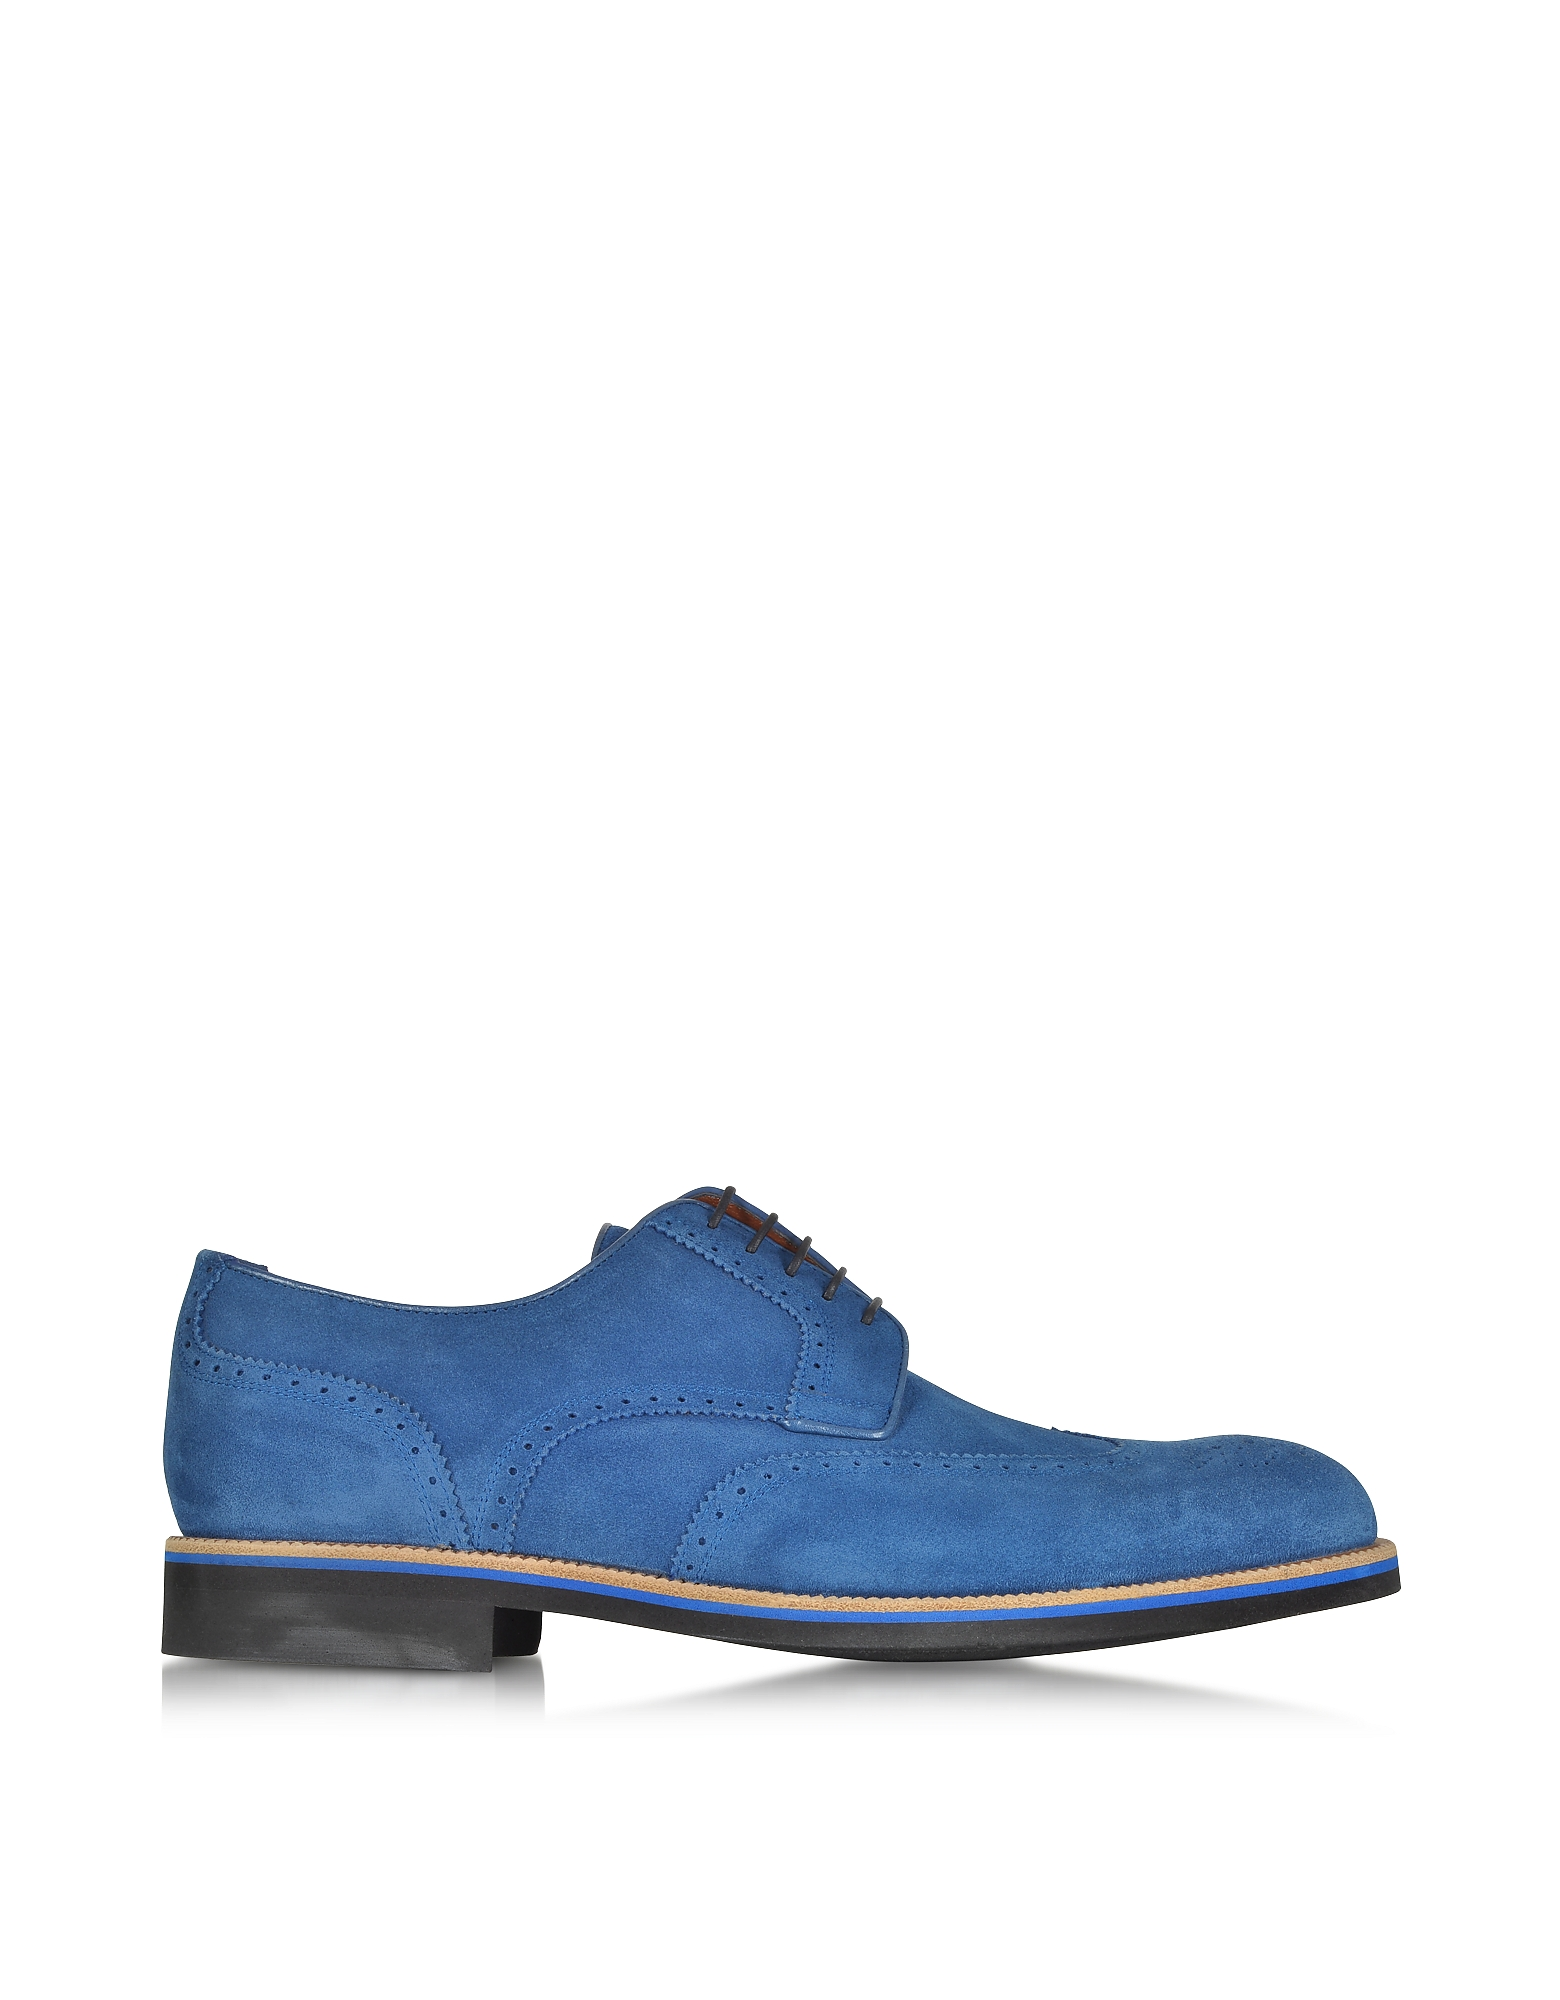 A.Testoni Shoes, Oltremare Suede Derby Shoe